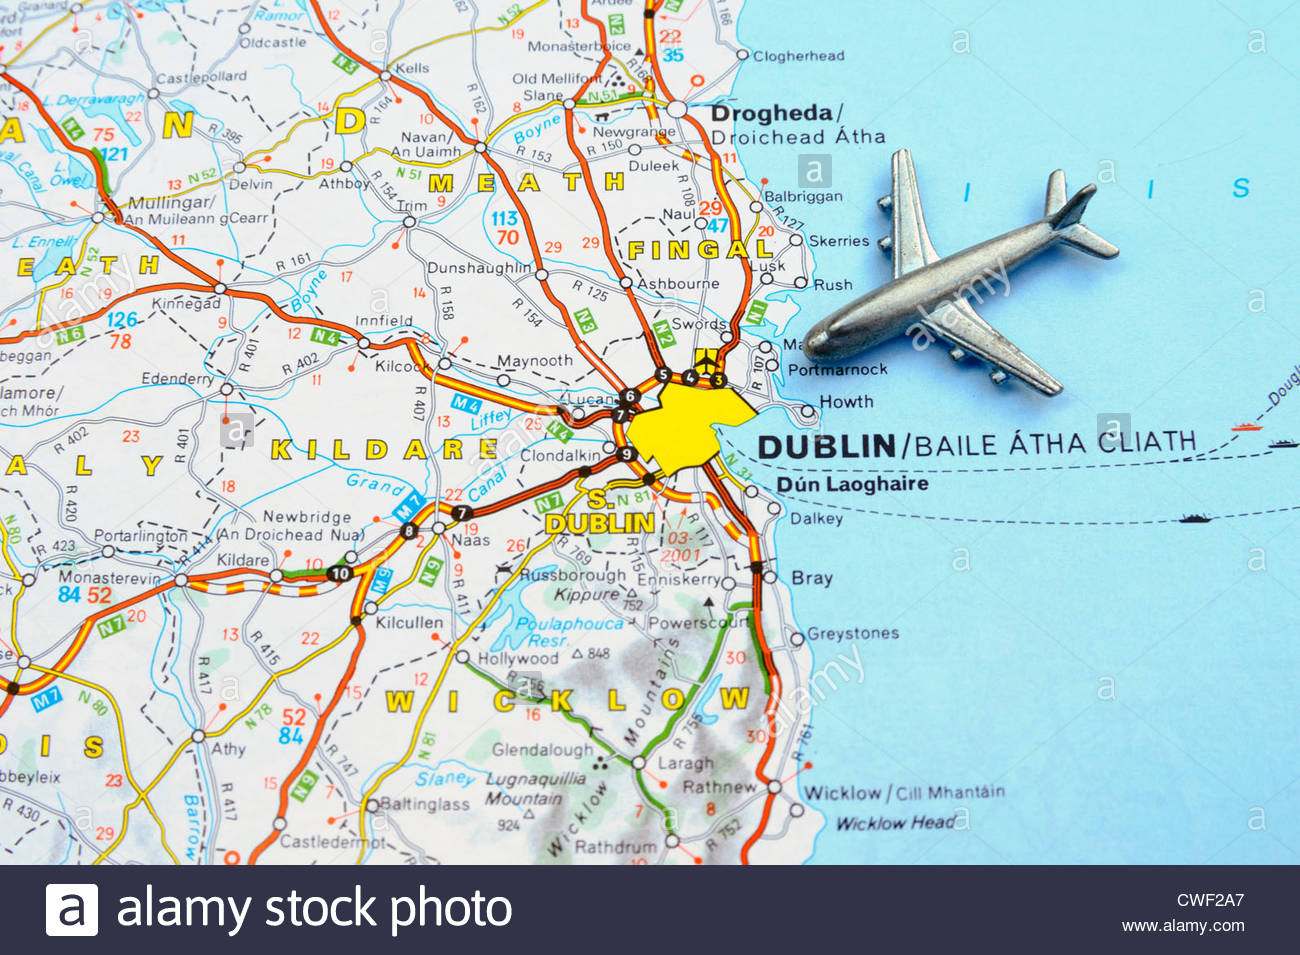 Destination Dublin. Toy aeroplane on a map showing Dublin, illustrating a journey or visit to Ireland. - Stock Image